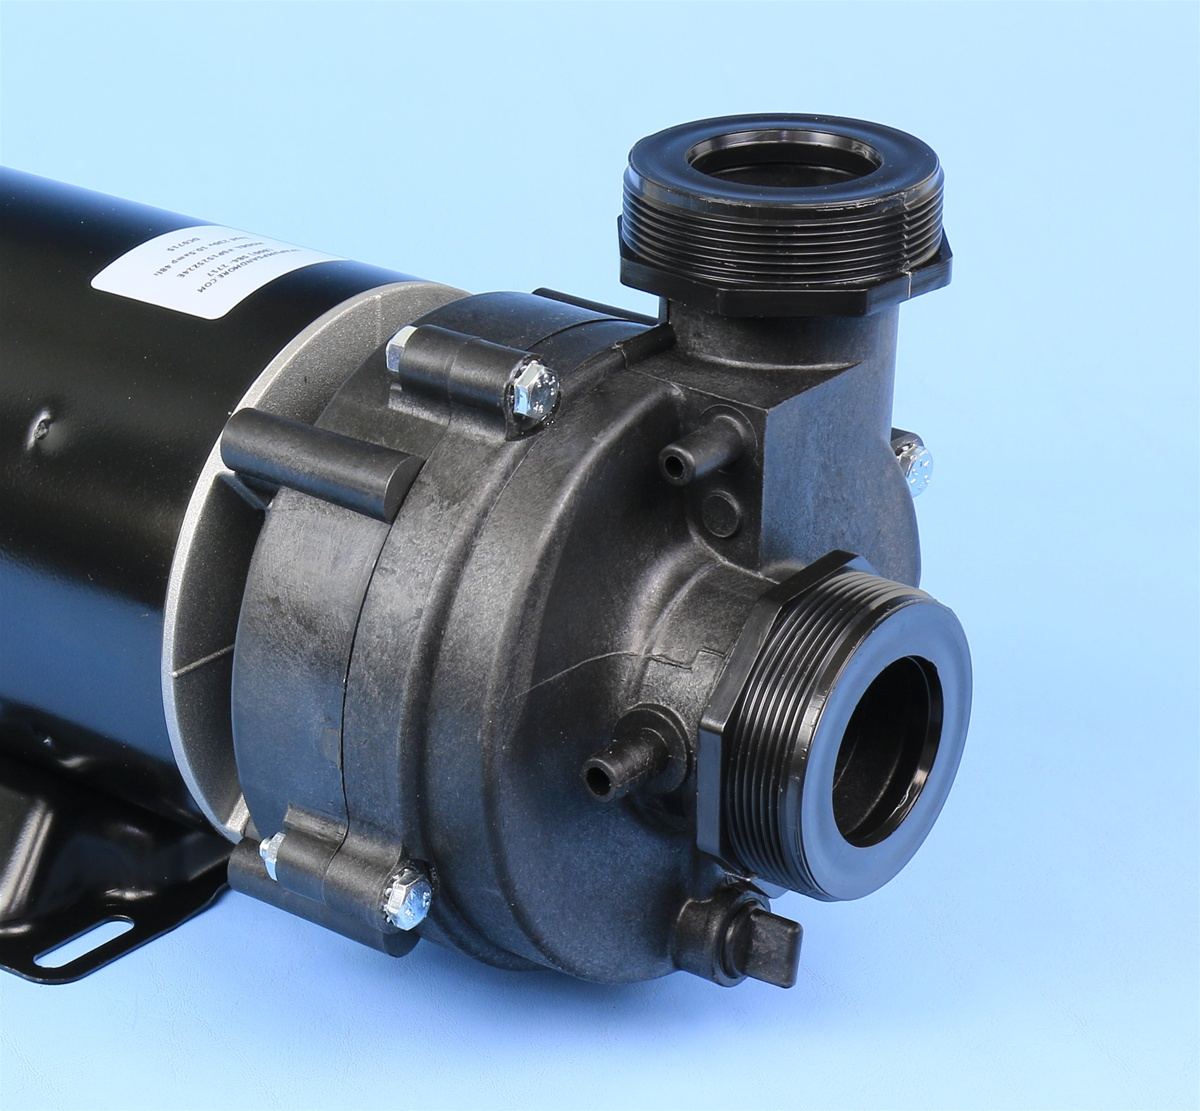 Sp1525 Z 24 E Hayward Spa Pump Replacement 2 0hp 230v 8 4